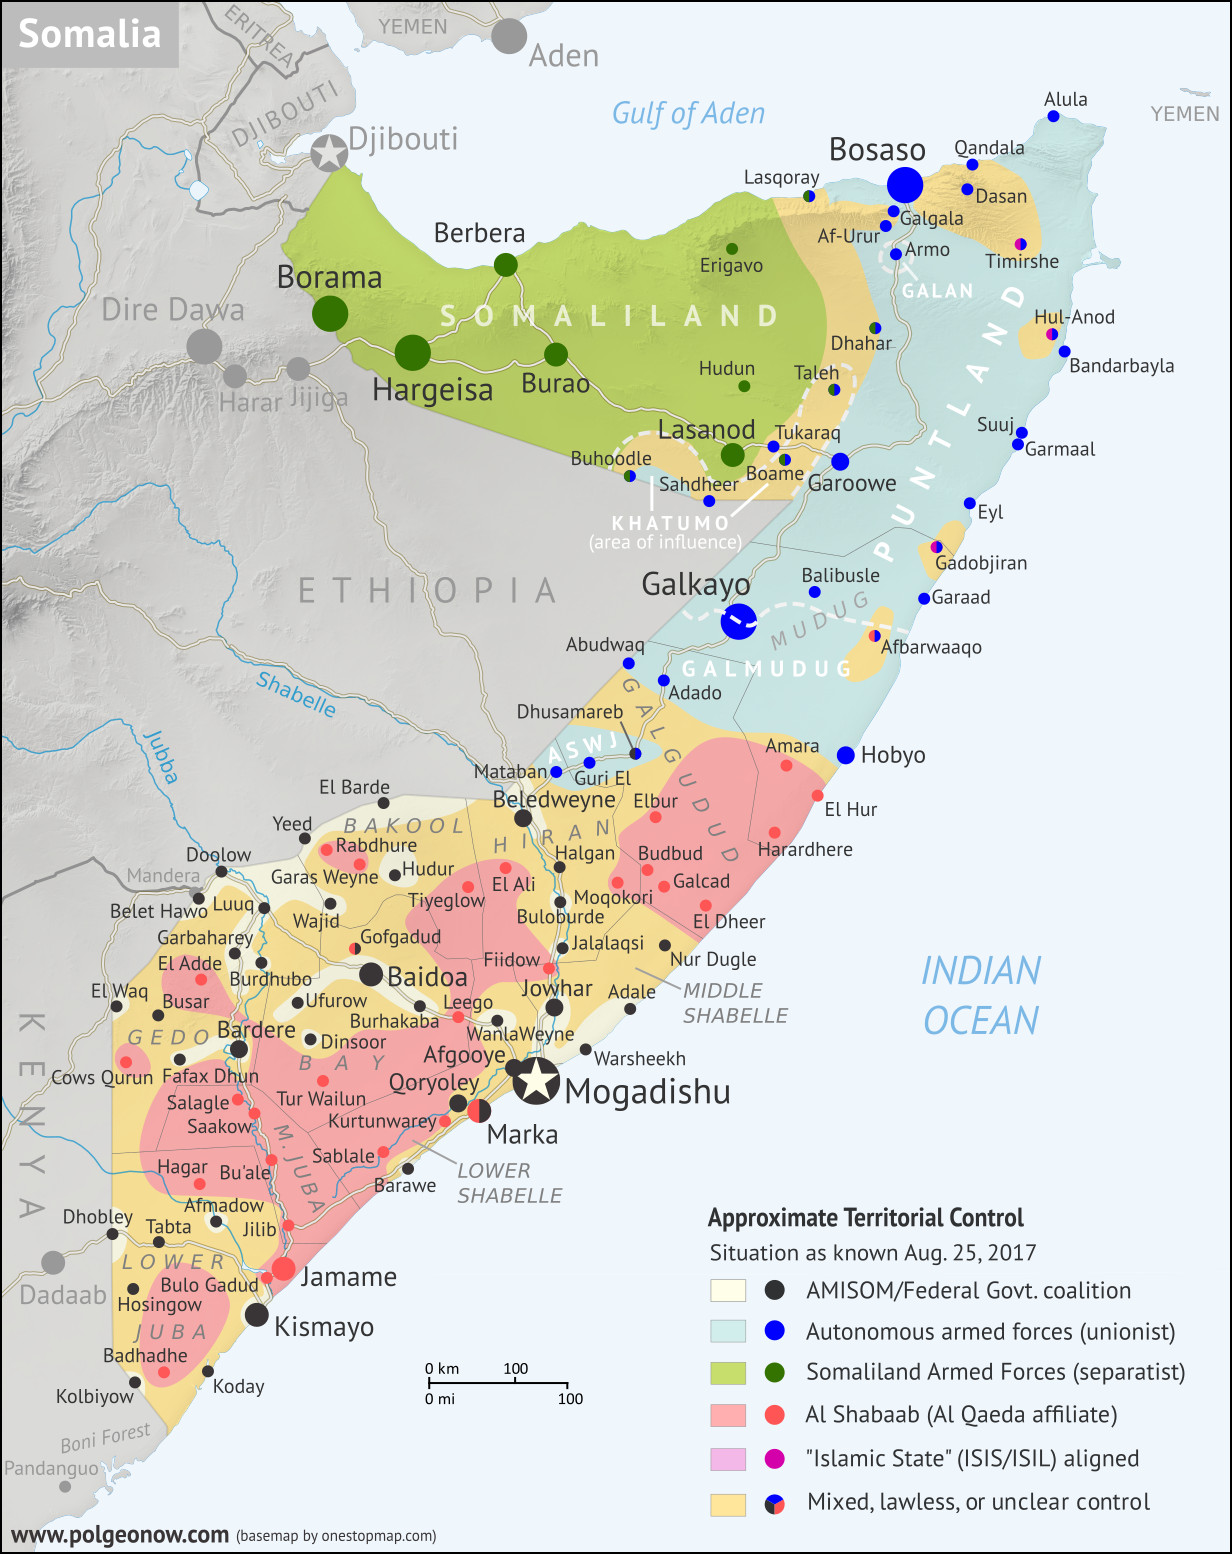 Somalia Control Map Timeline August 2017 Political Geography Now